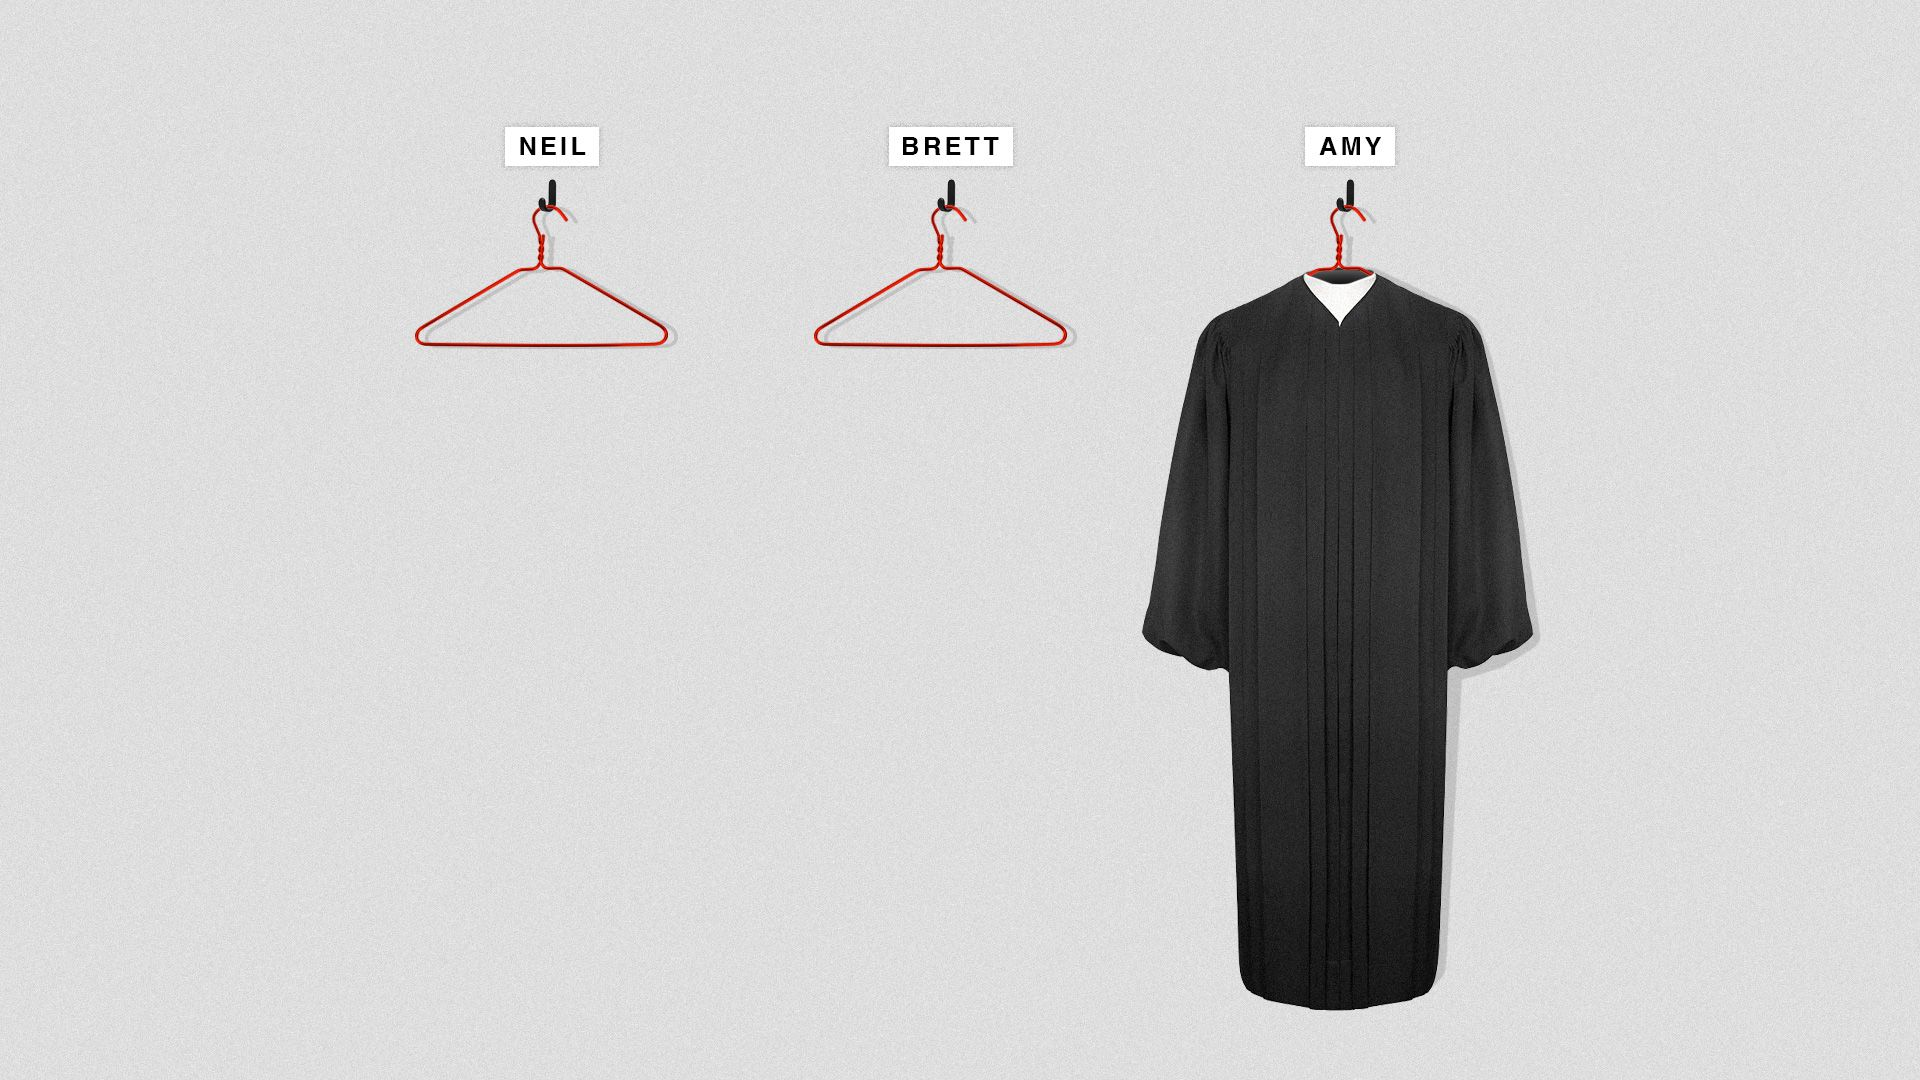 A judge's robe on a wire hanger with a label above reading 'Amy'